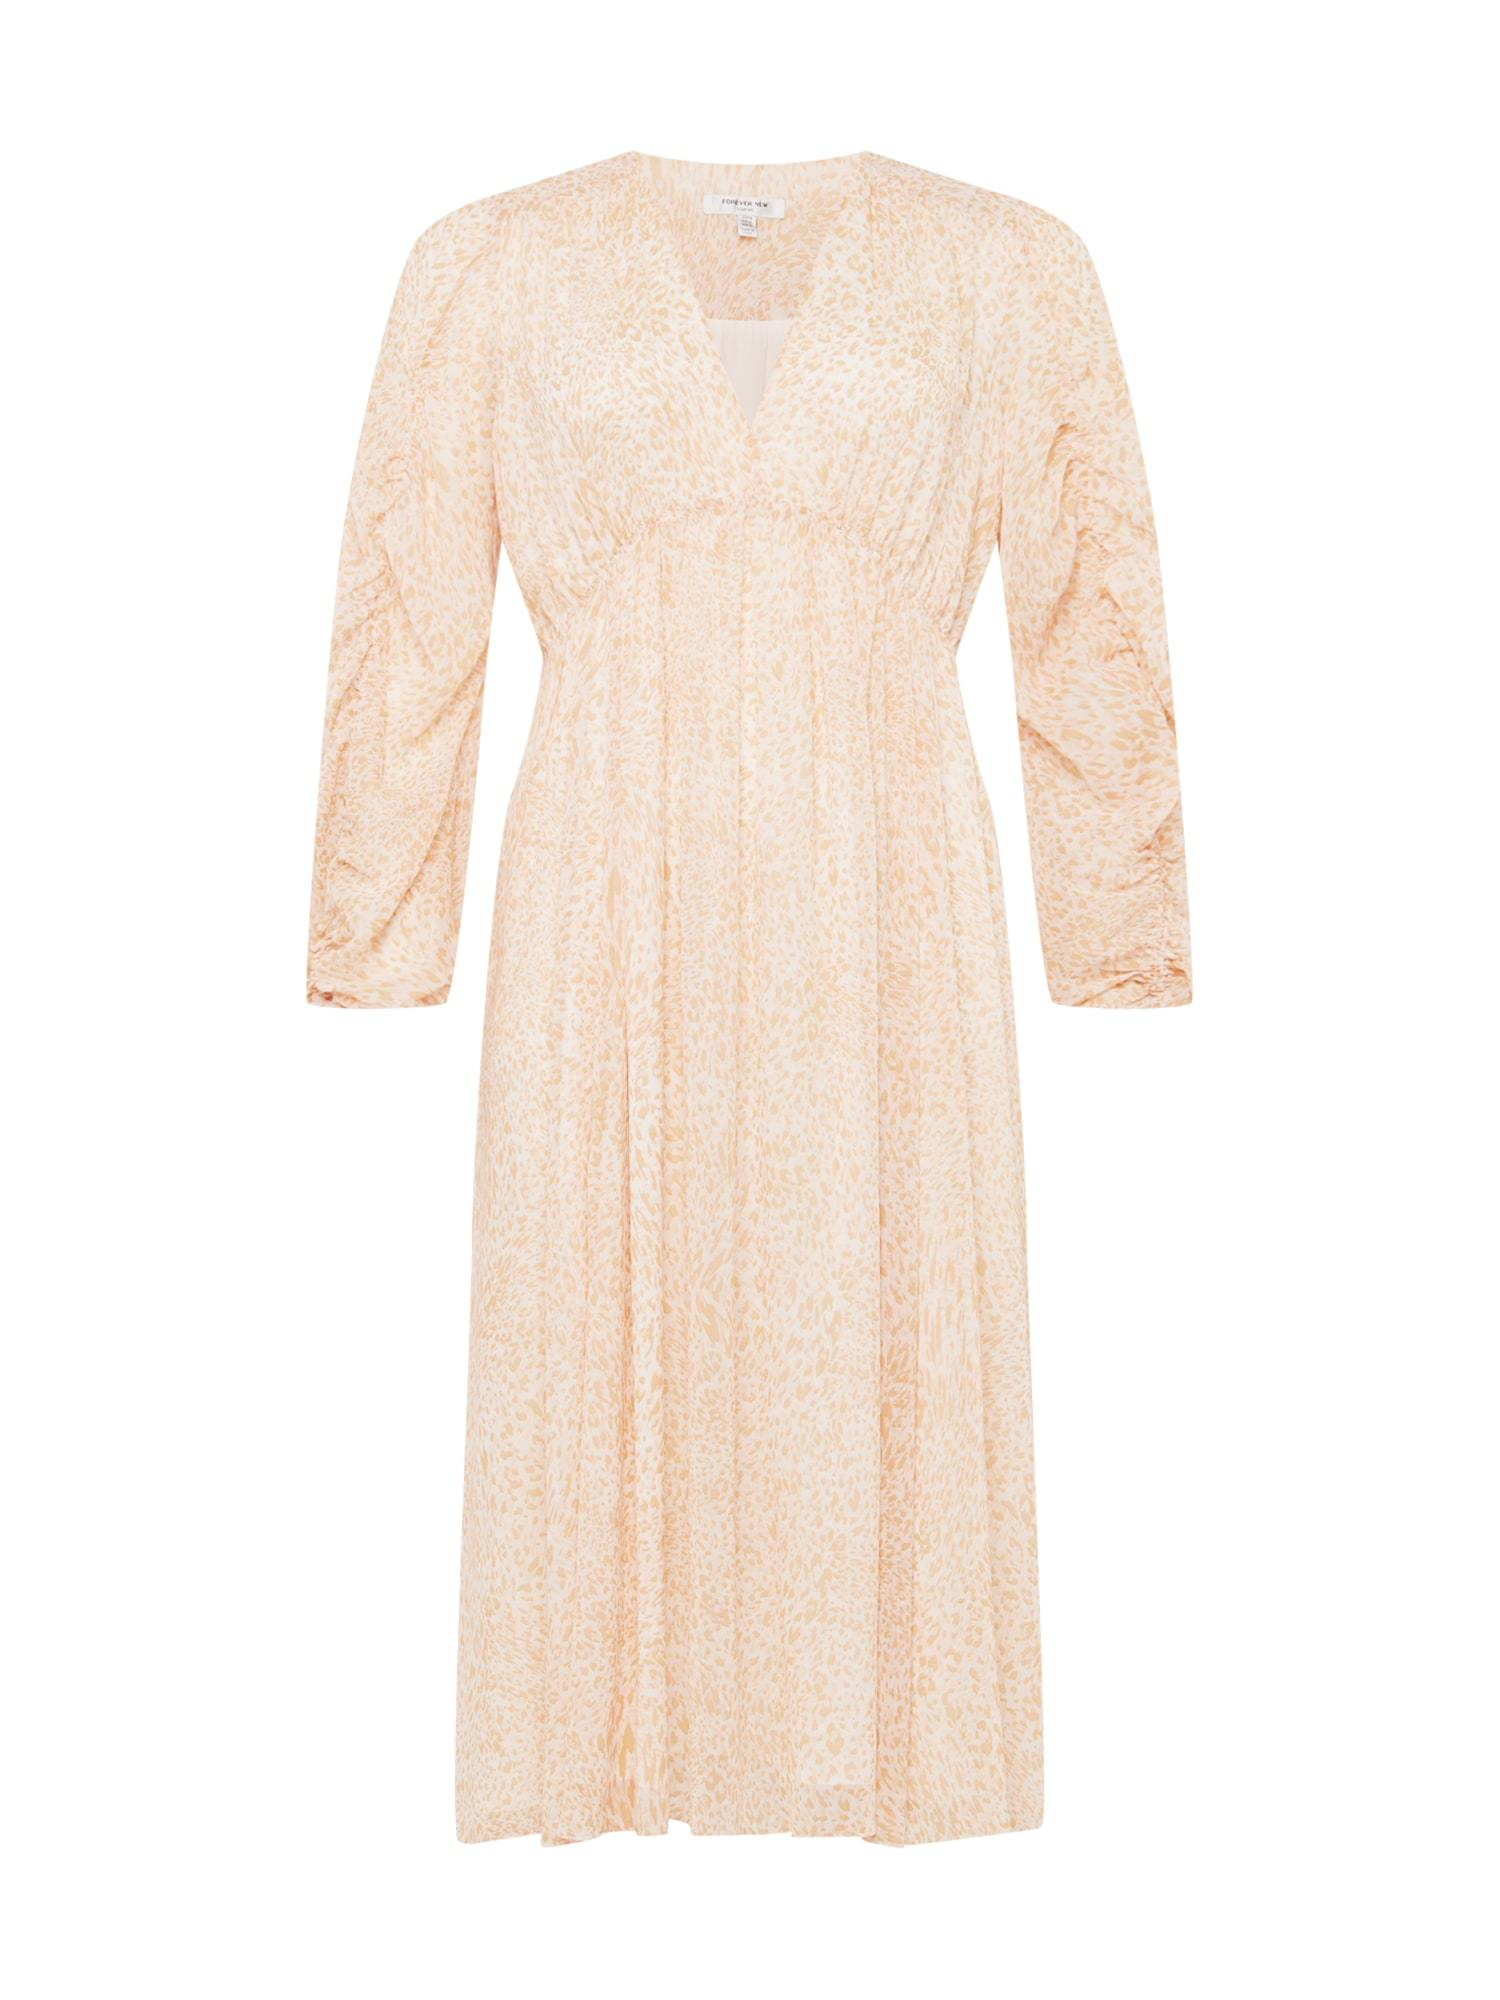 Forever New Curve Robe  - Beige - Taille: 48 - female